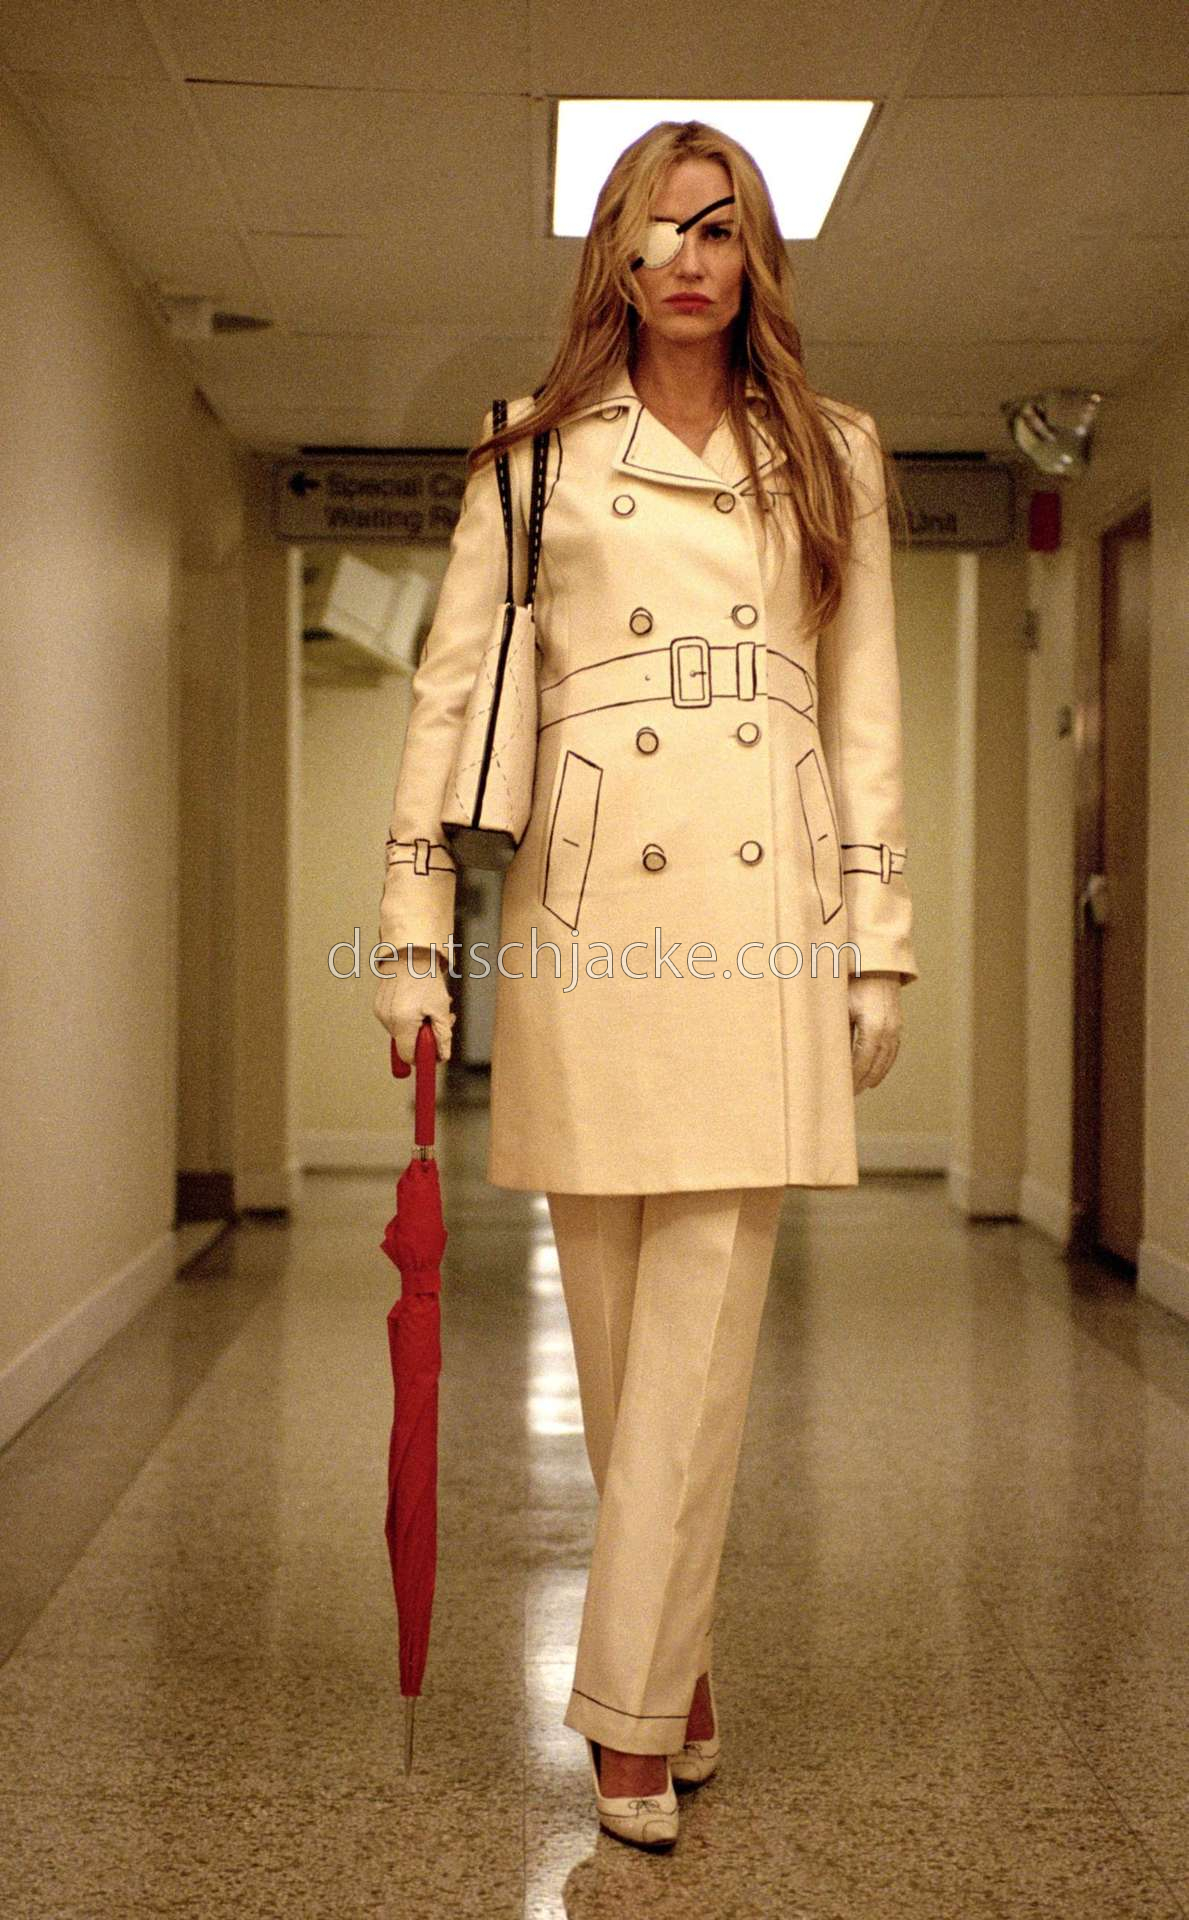 Daryl Hannah Kill Bill Elle Driver White Leather Jacket1